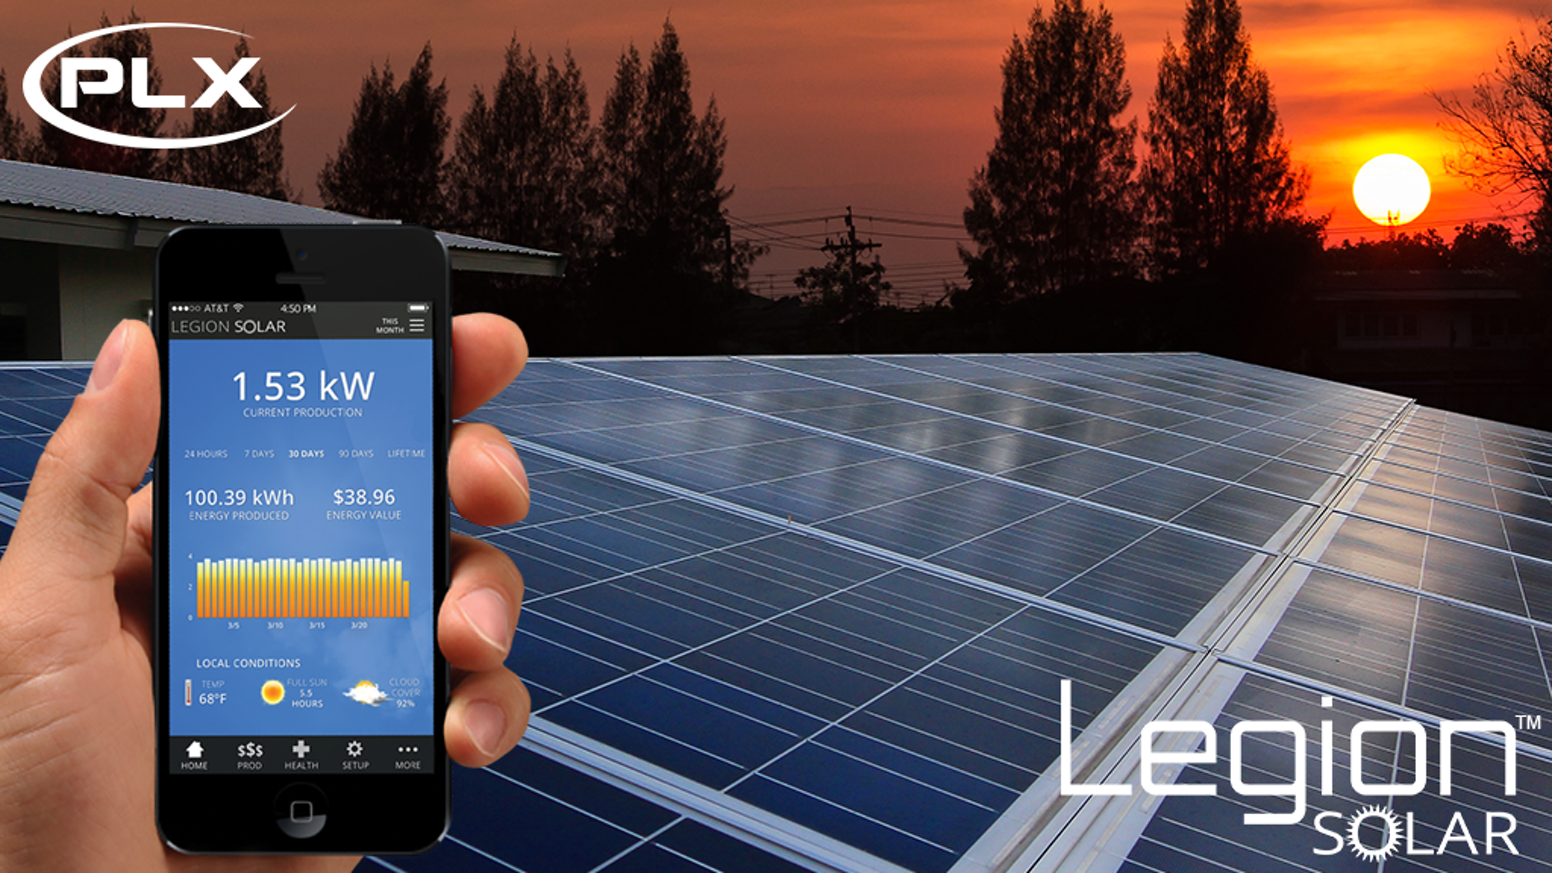 Legion Solar 2 Energy Made Simple By Plx Devices Faq Kickstarter Microinverter Panel System Design Electronic Products